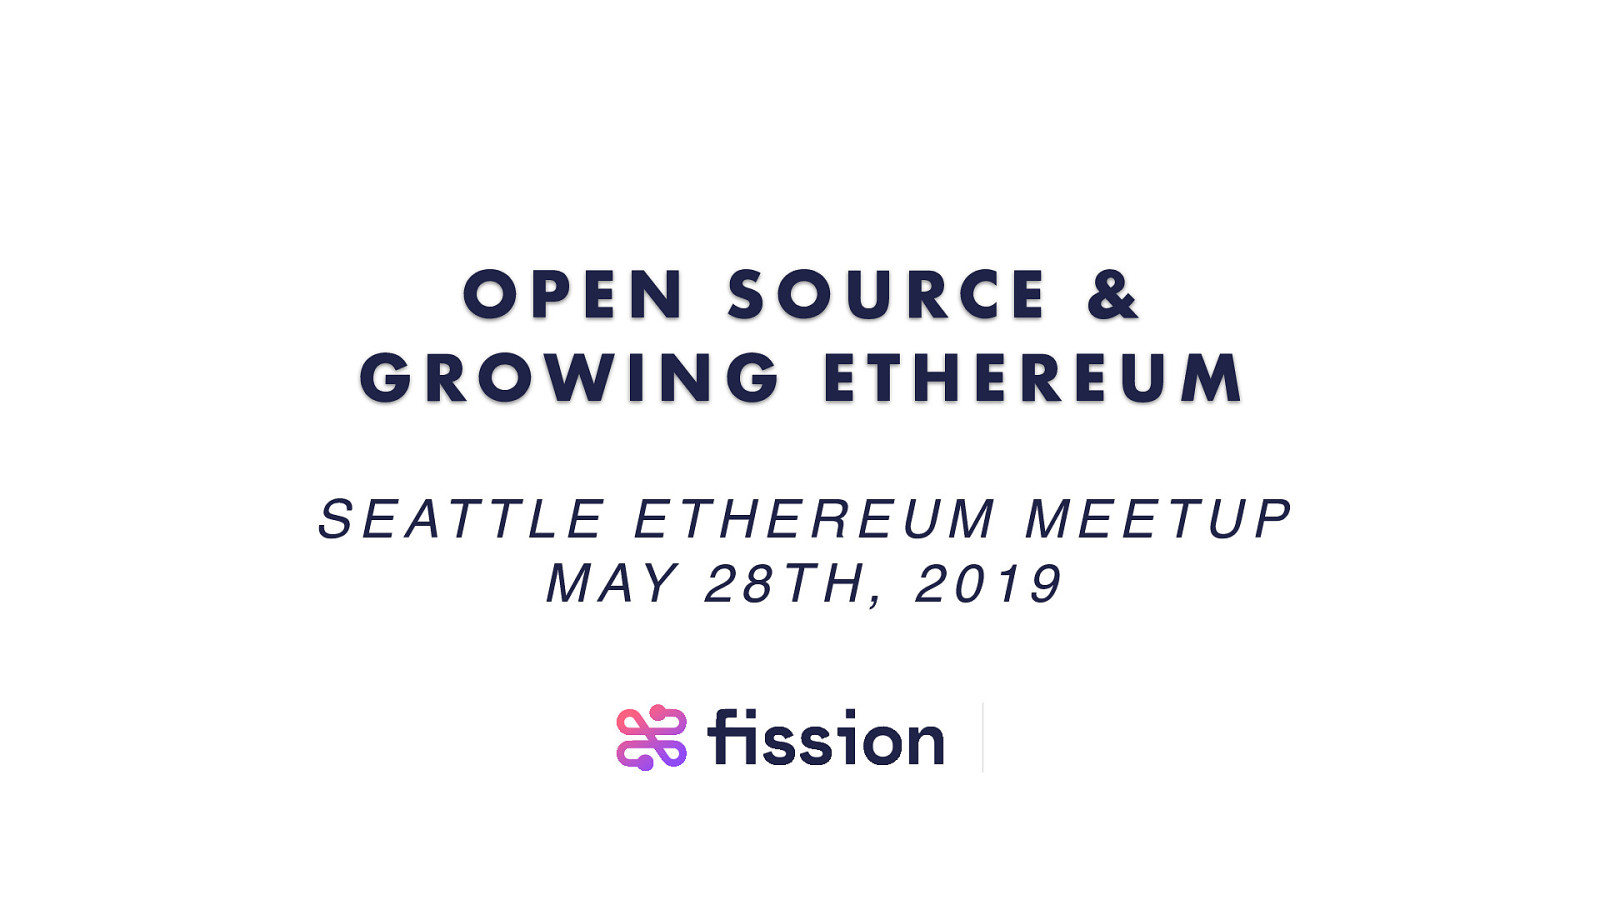 Open Source & Growing Ethereum